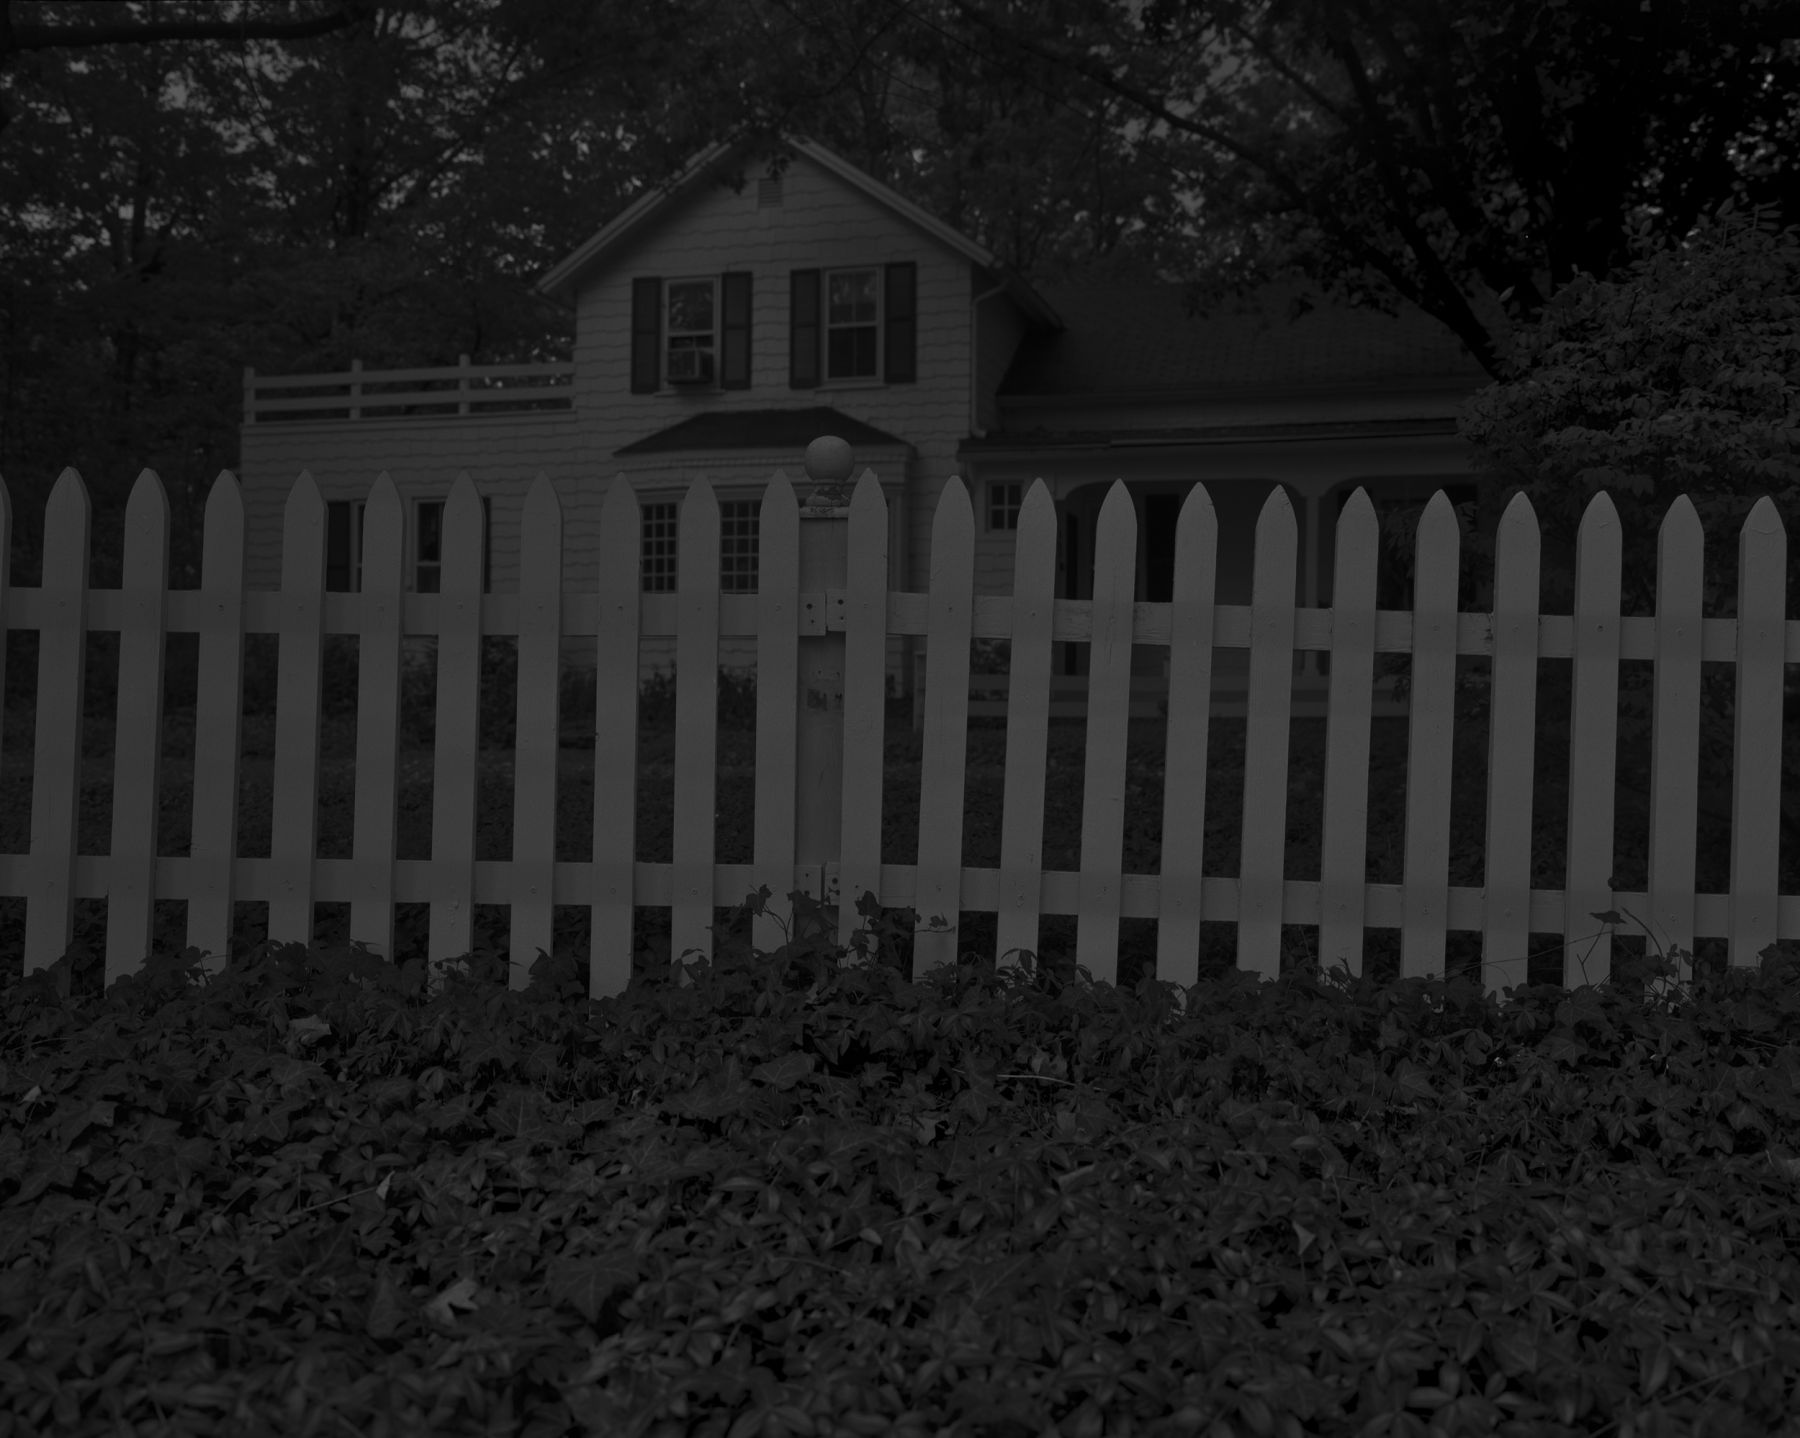 Untitled #1 (Picket Fence and Farmhouse), 2017